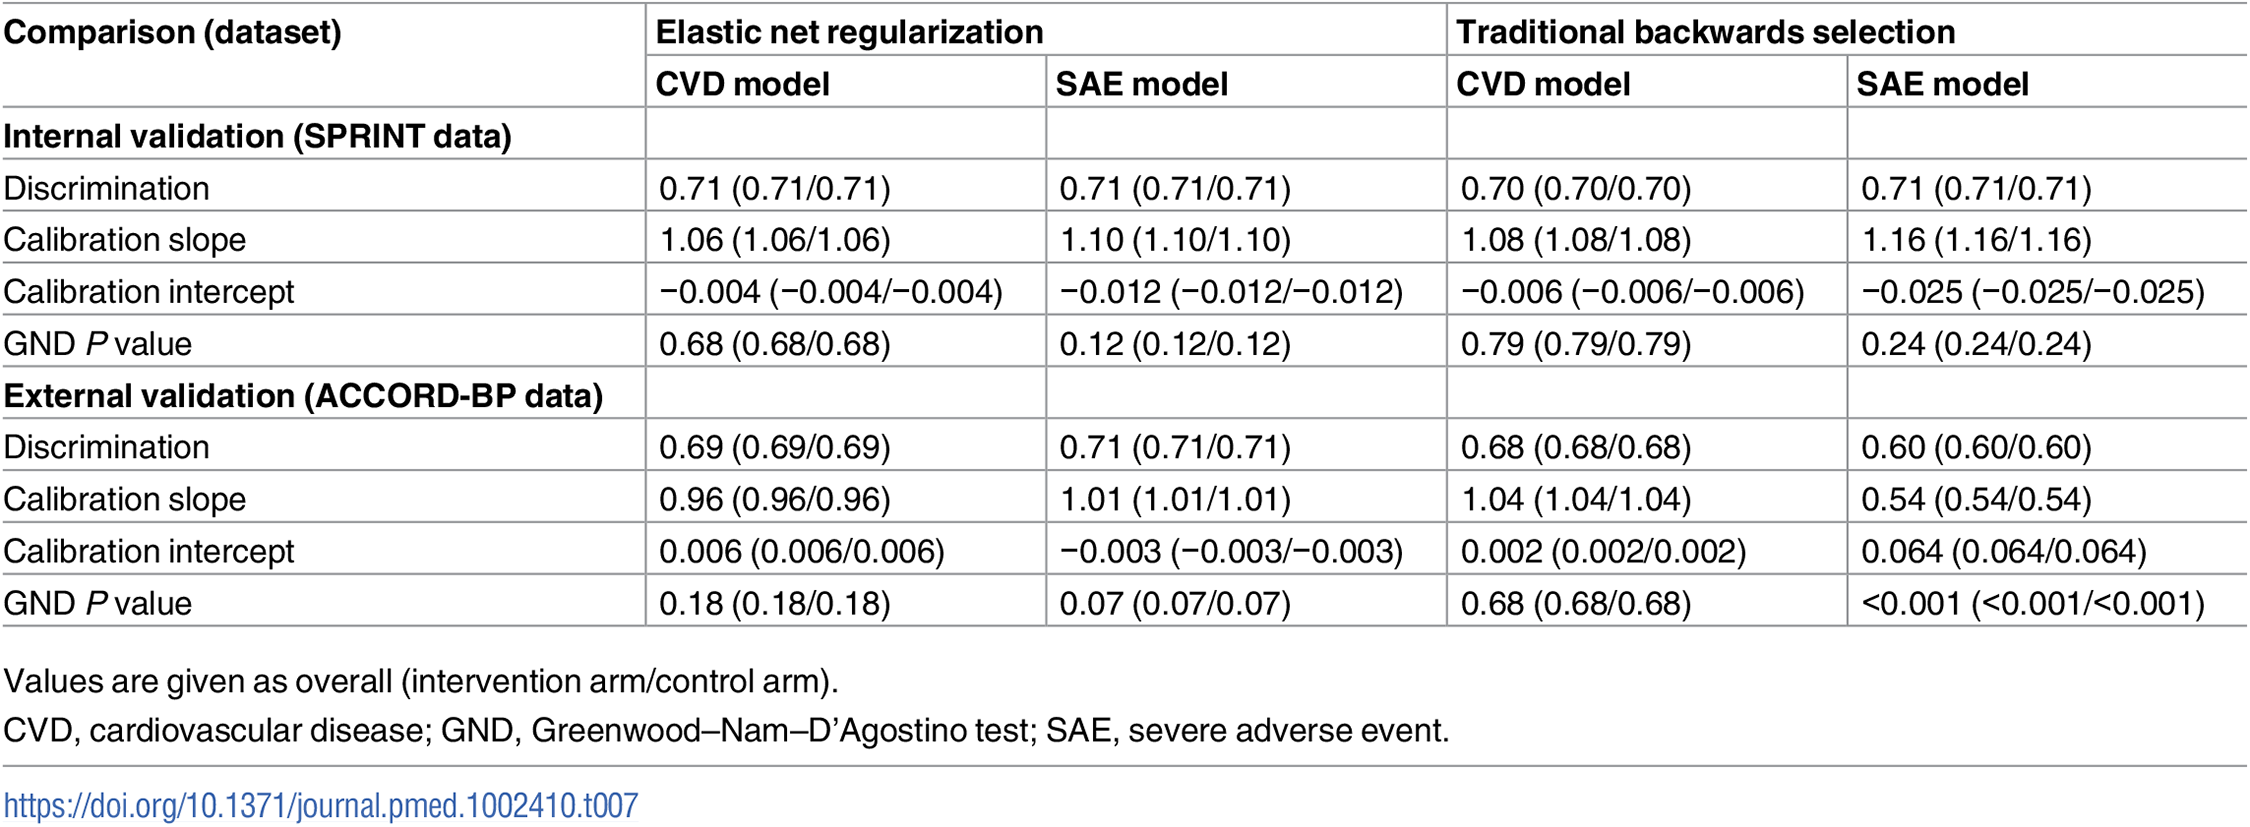 Comparison of discrimination and calibration for models fit by elastic net regularization versus traditional backwards selection.